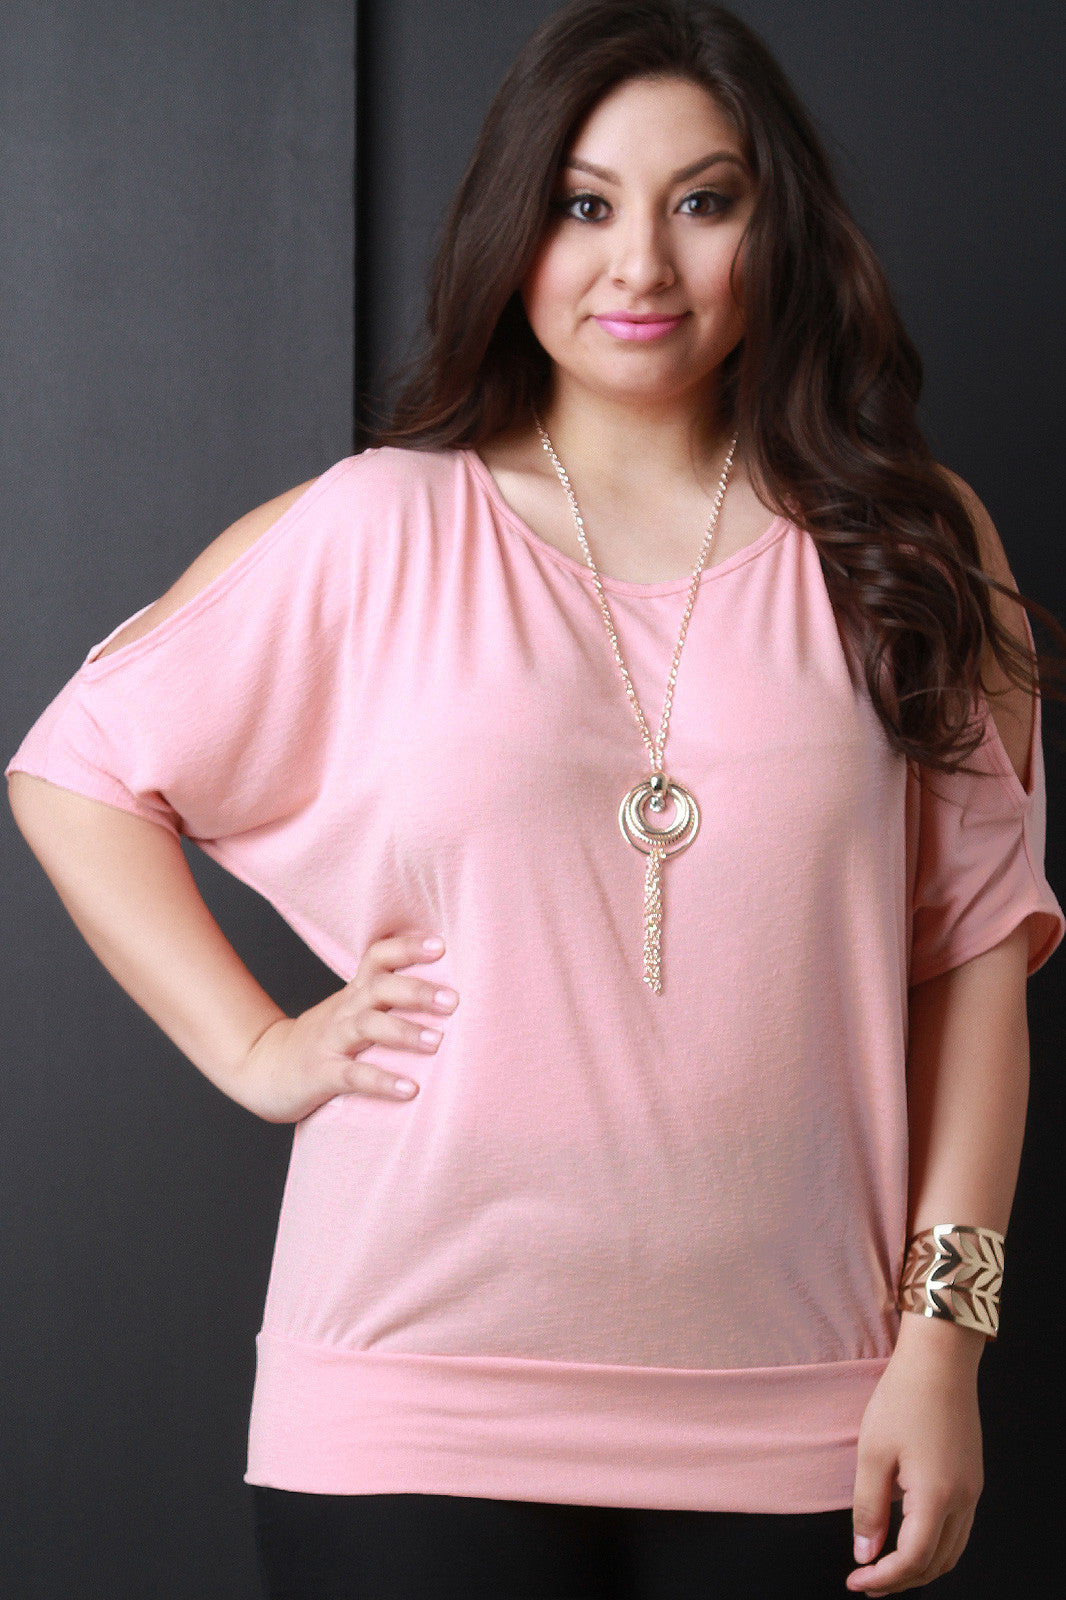 Cold Shoulder Bat Wing Sleeve Top - Thick 'N' Curvy Shop - 9